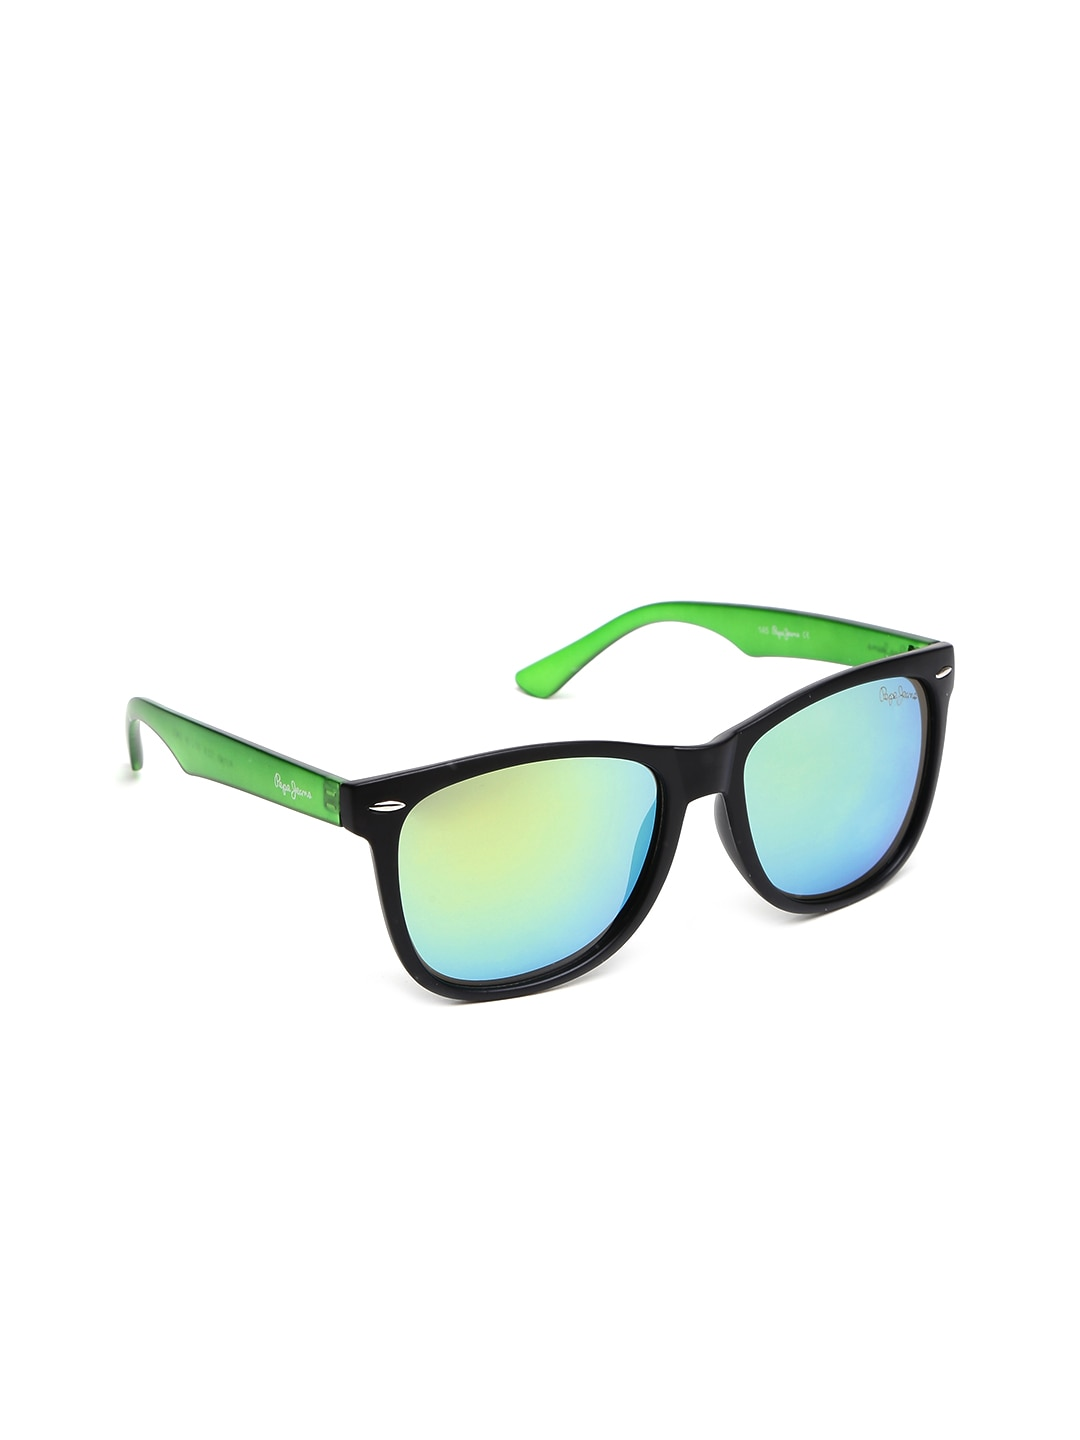 febd7464931 Compact Sunglasses - Buy Compact Sunglasses online in India